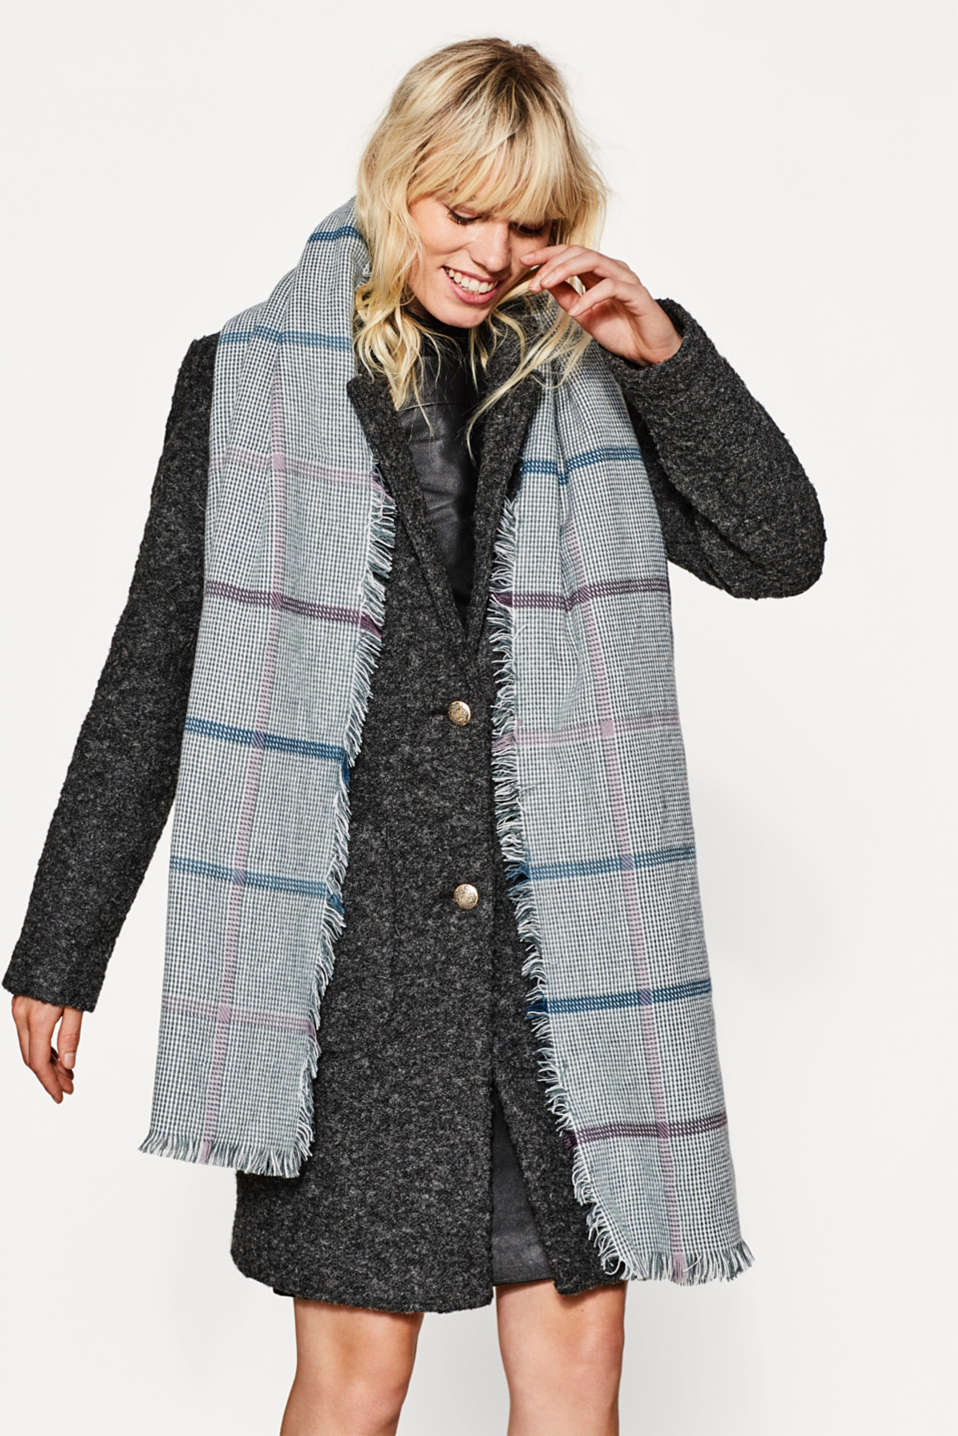 Oversized scarf with a check pattern